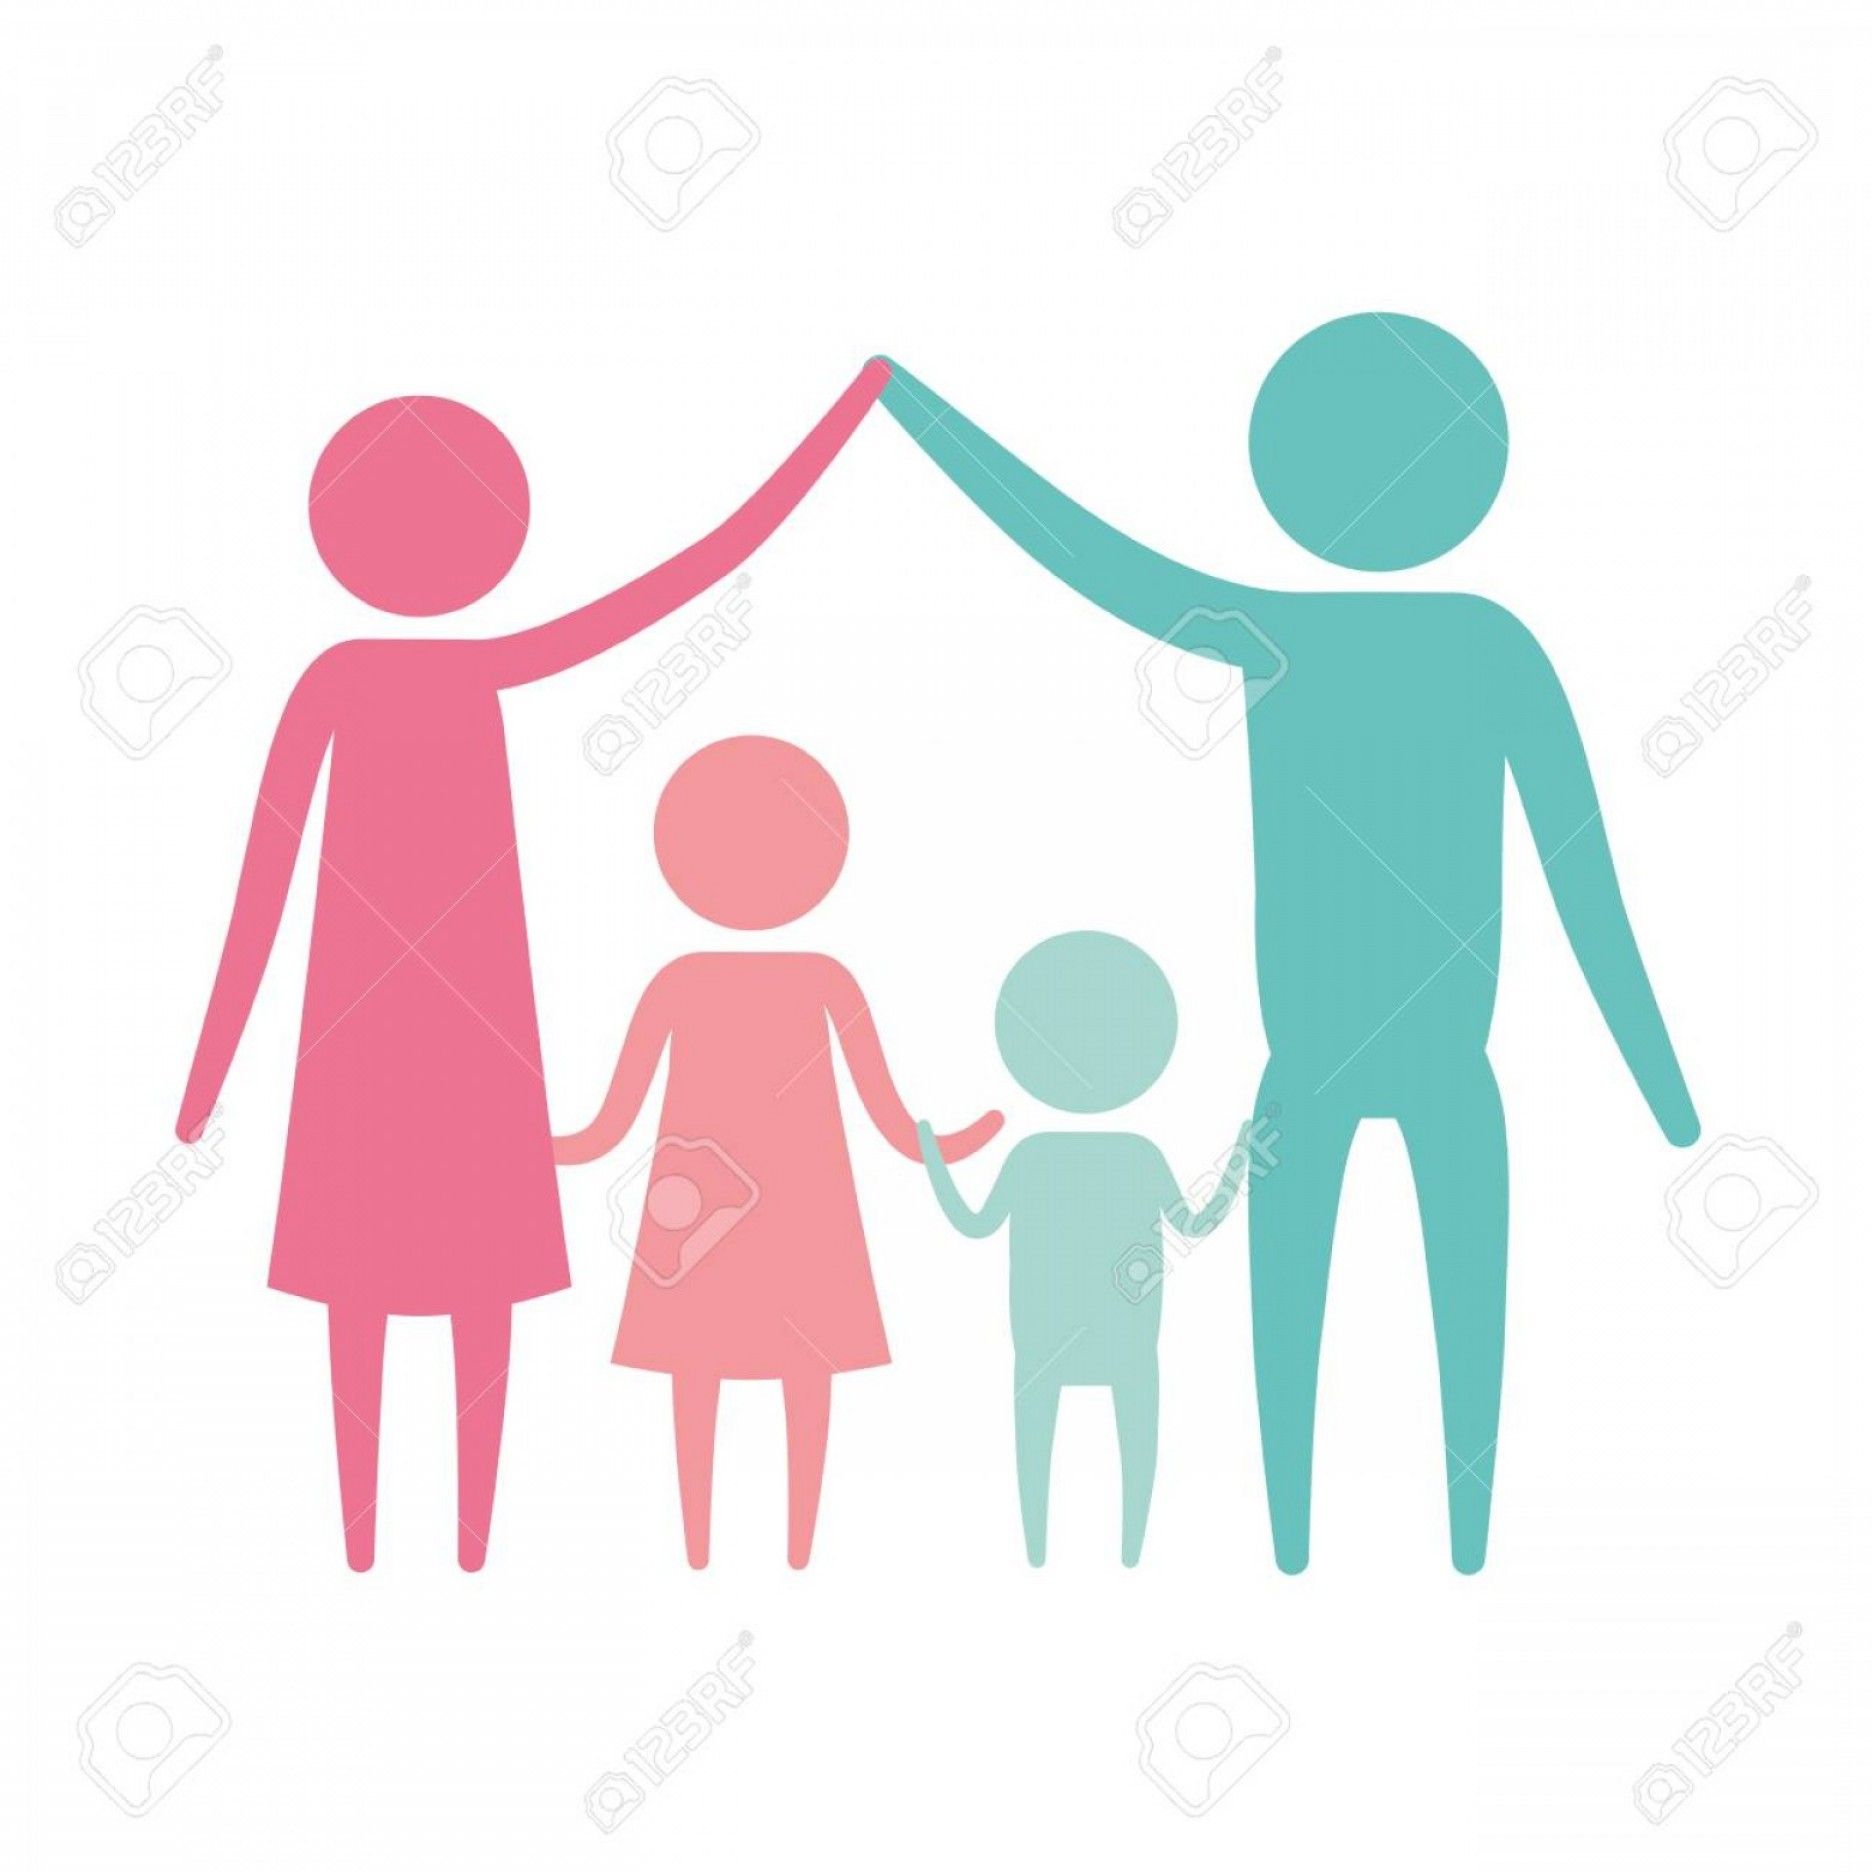 Holding Hands Up Silhouette Vector: Photostock Vector Color Silhouette Set Pictogram Parents Holding Hands Up And Children In The Middle Of Them Vector Il